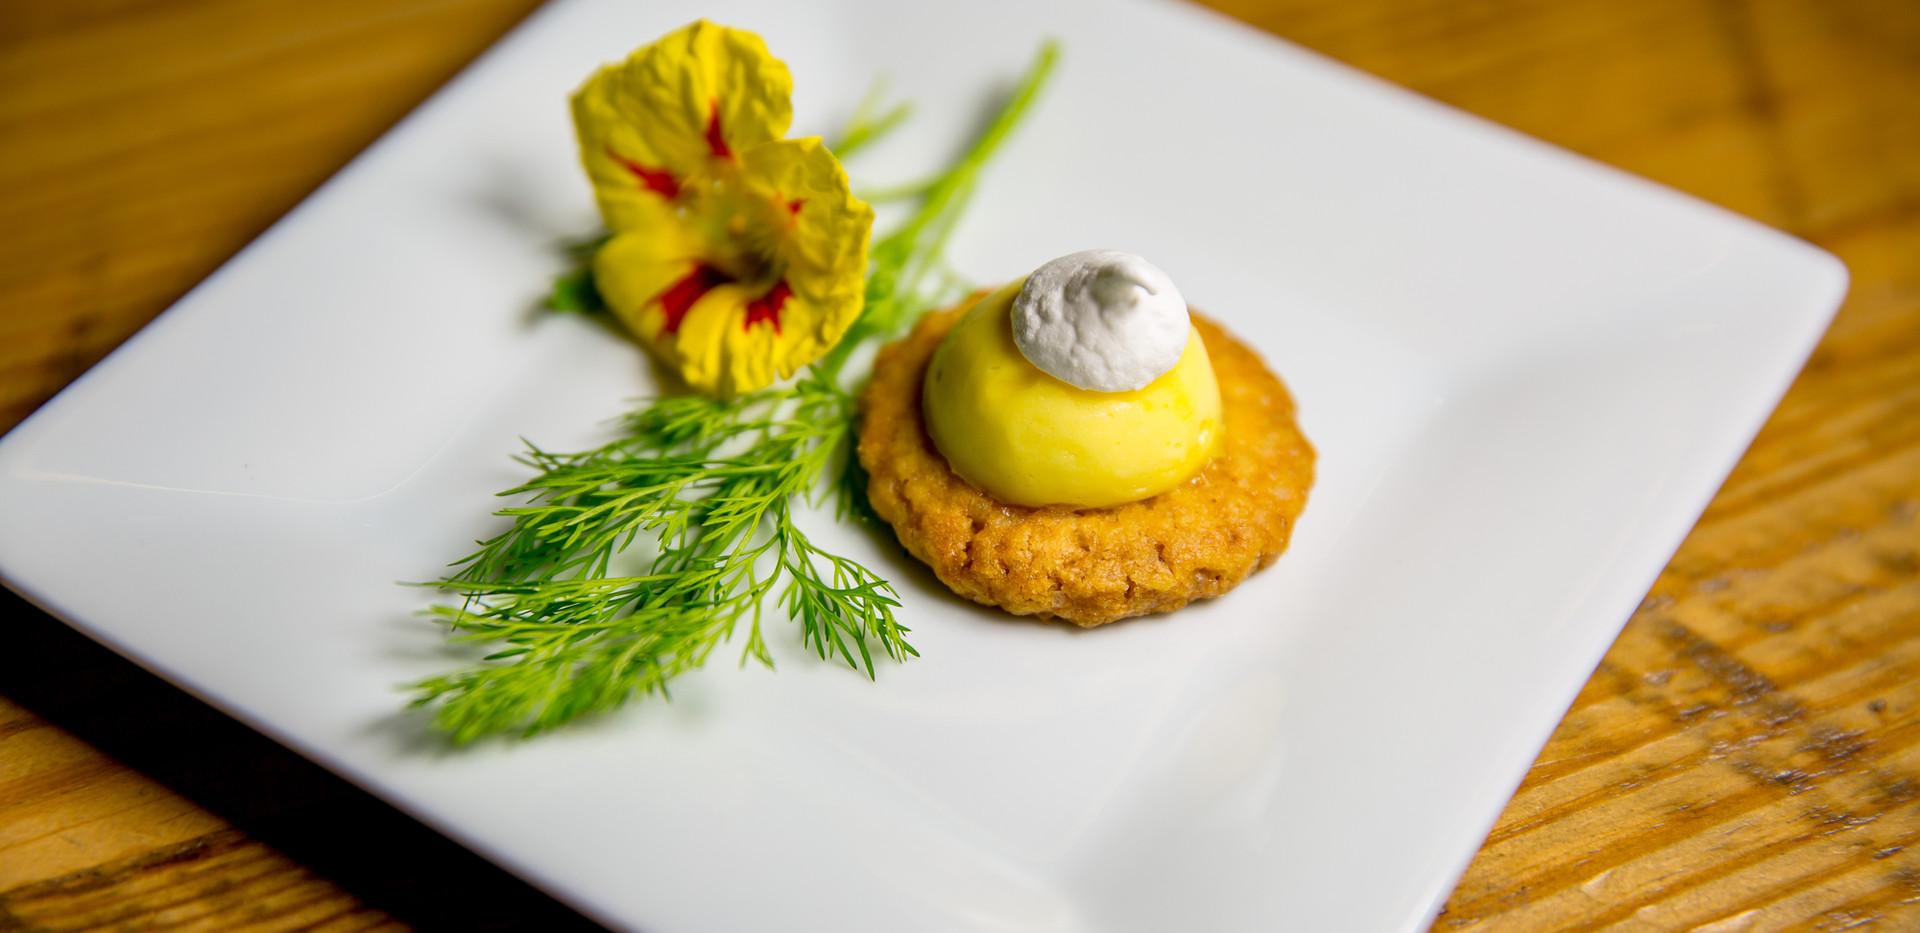 Lemon_Curd_Butter_Biscuit-1.jpg